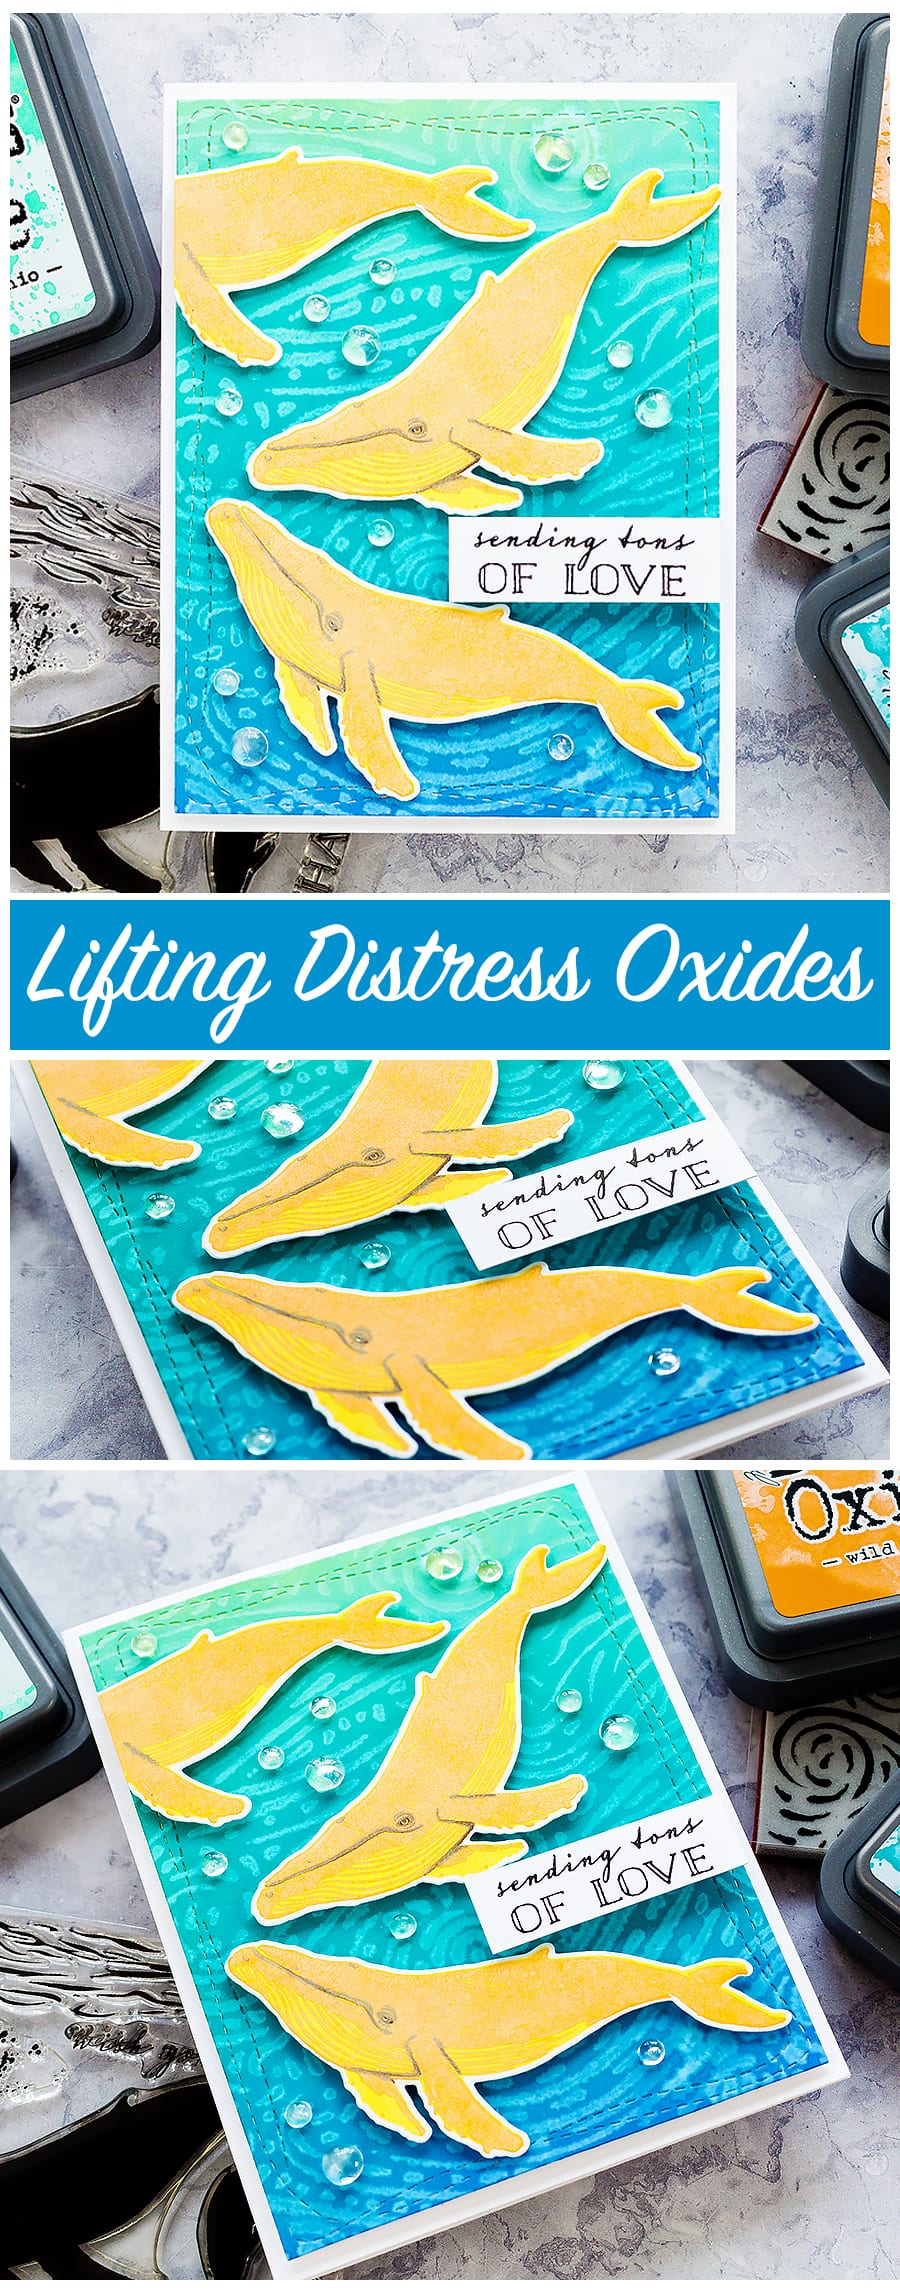 Lifting Distress Oxide with water. Handmade fun whale cards by Debby Hughes. Find out more here: https://limedoodledesign.com/2018/03/video-lifting-distress-oxides/